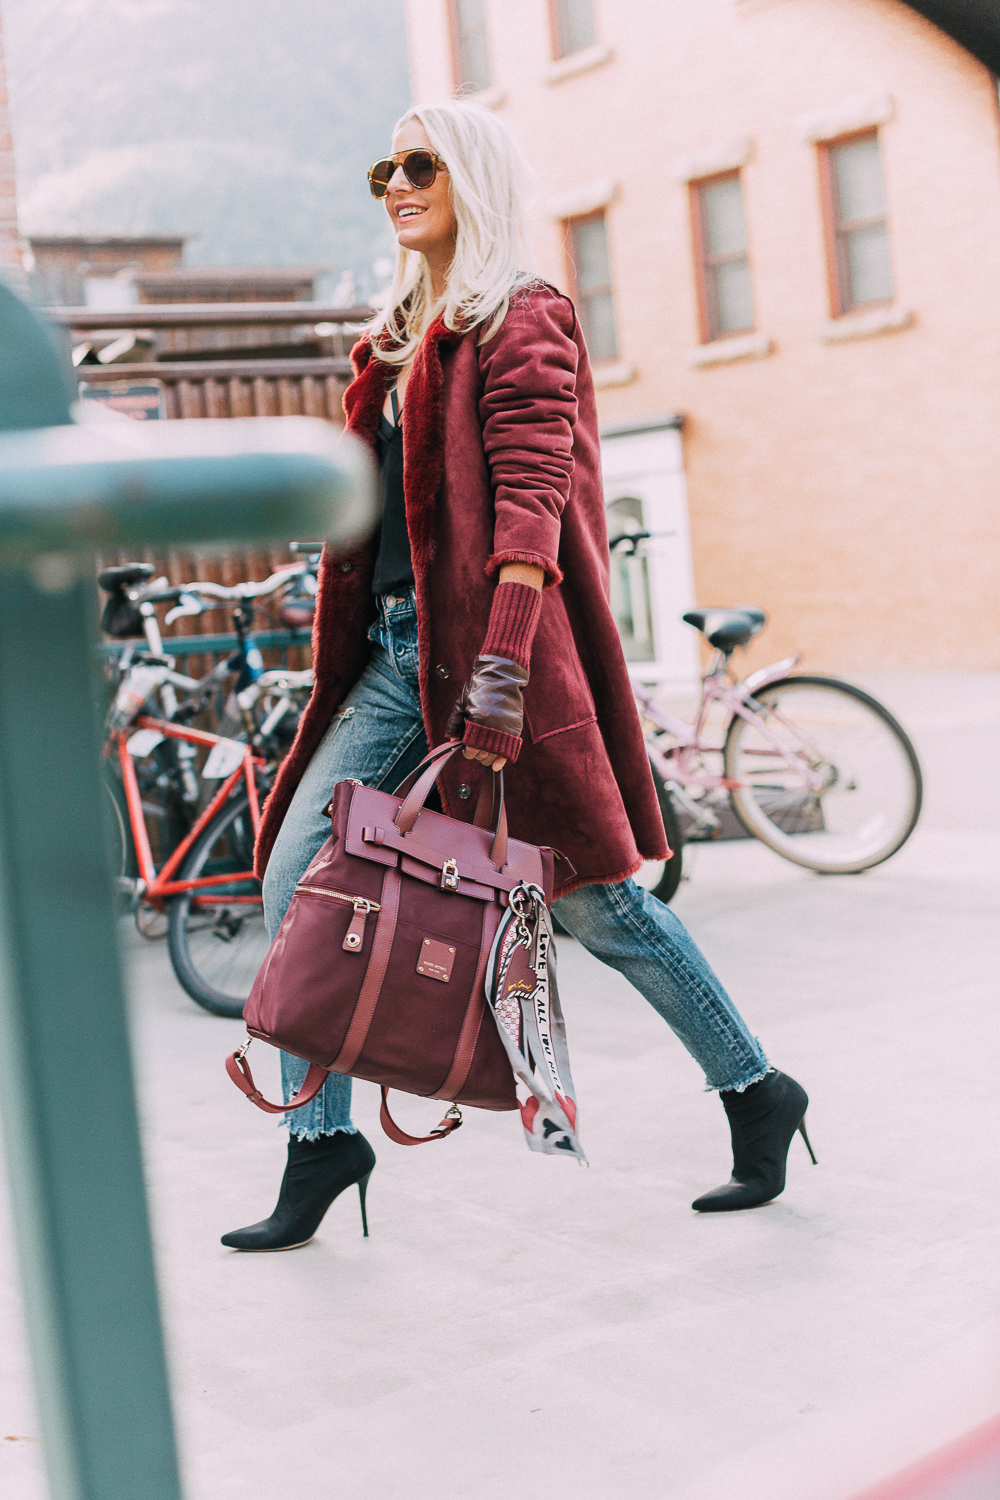 burgundy Jetsetter backpack paired with burgundy plush coat, cropped Moussy jeans, Stuart Weitzman sock booties and fingerless gloves